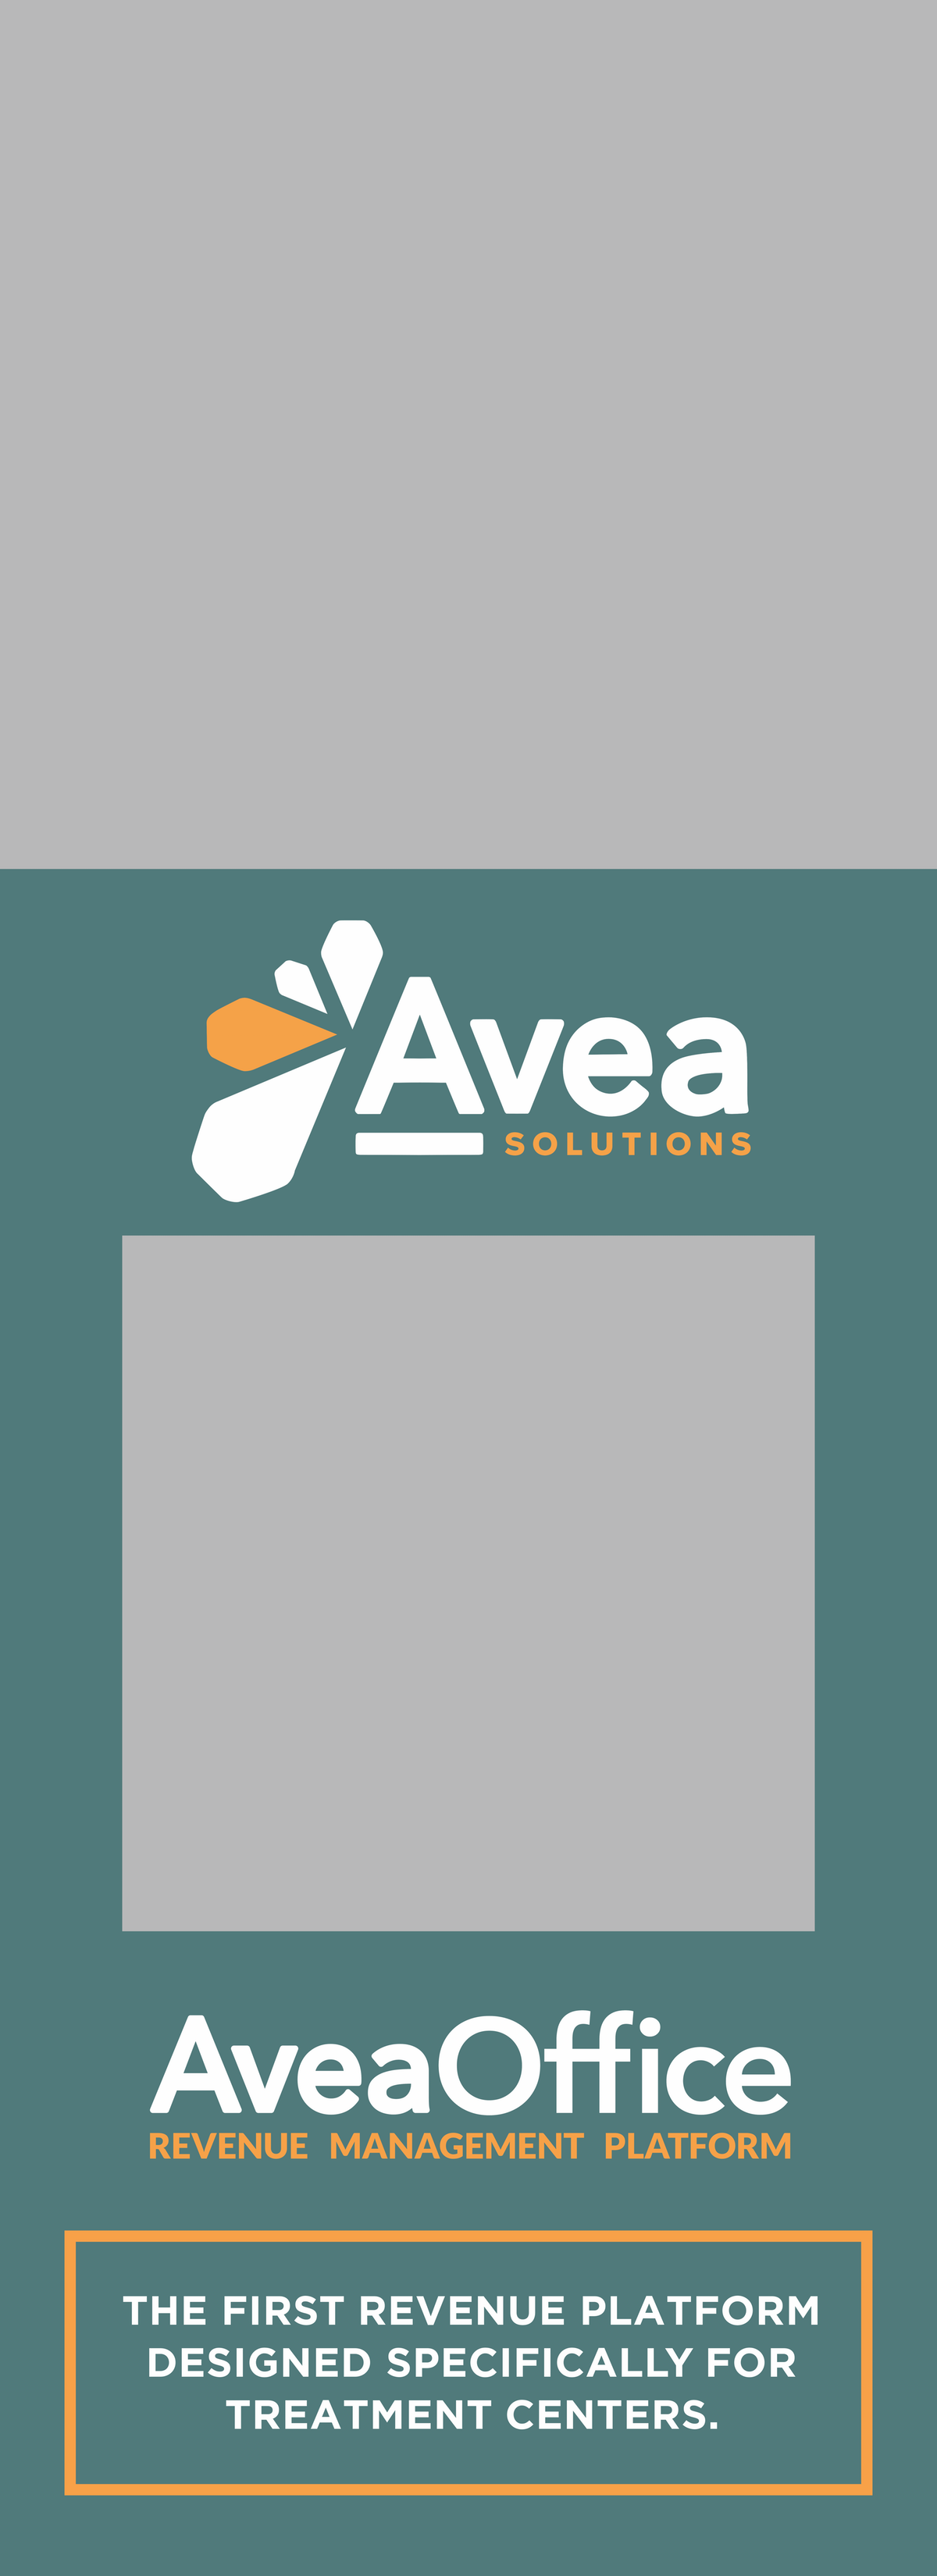 Avea Solutions Charging Station Wrap